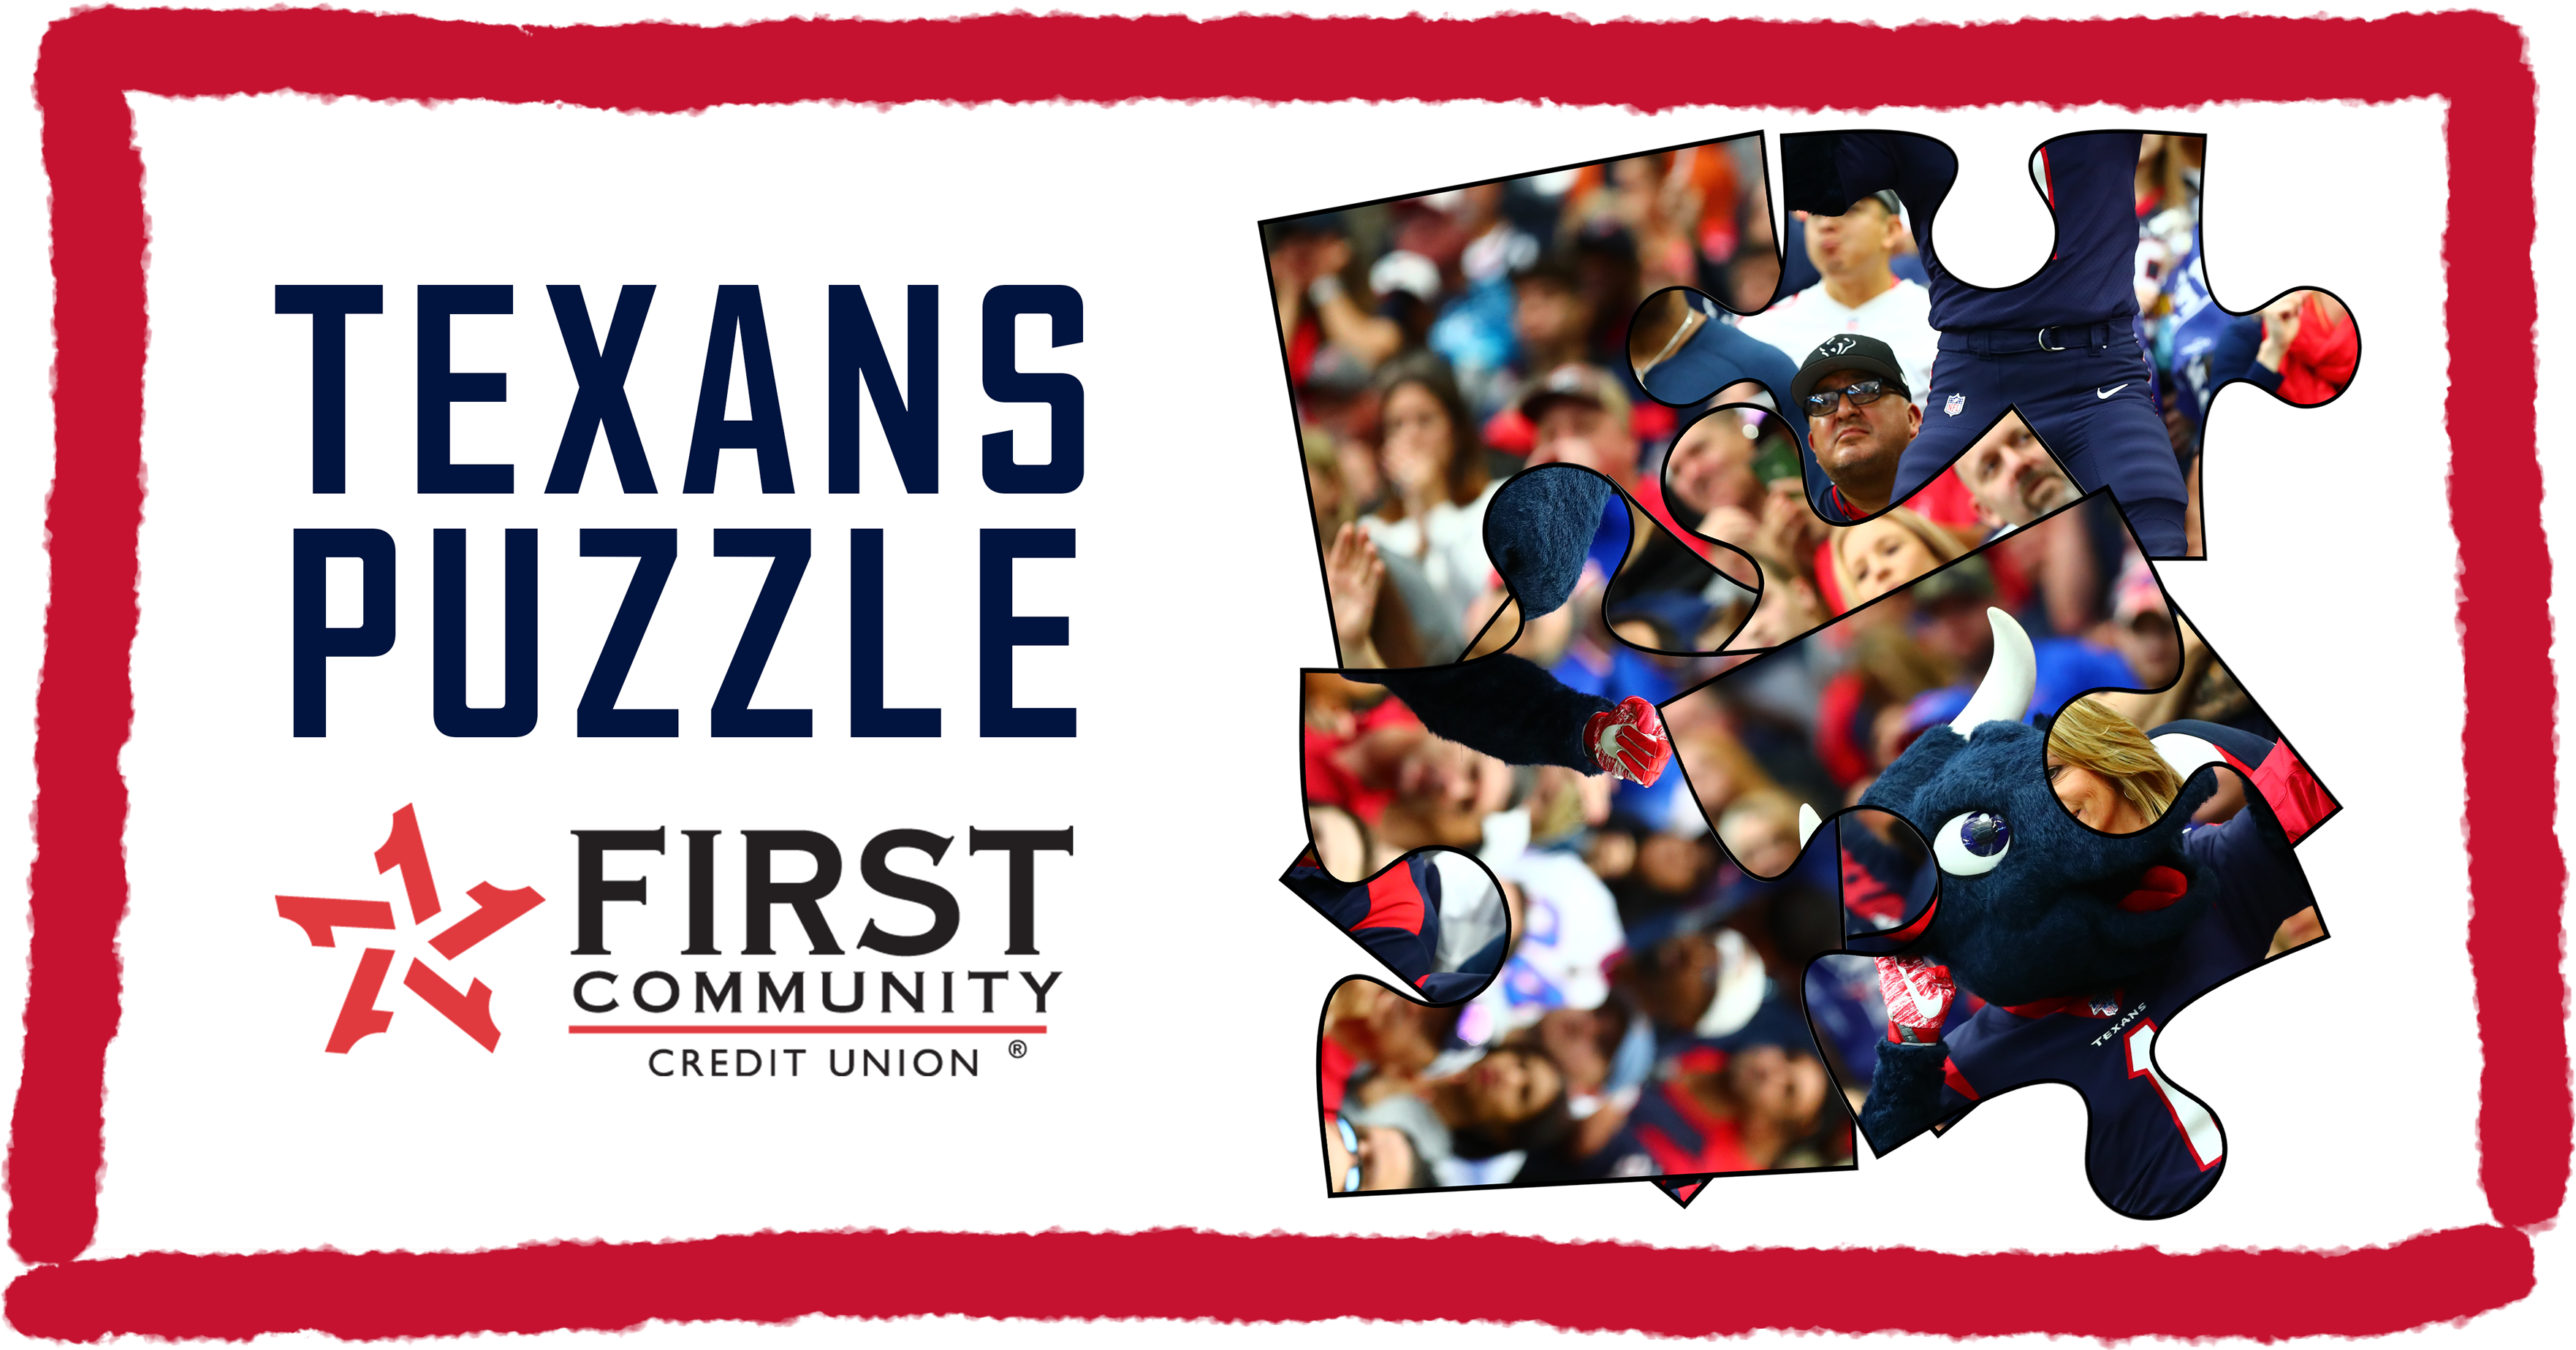 Texans Puzzle presented by First Community Credit Union